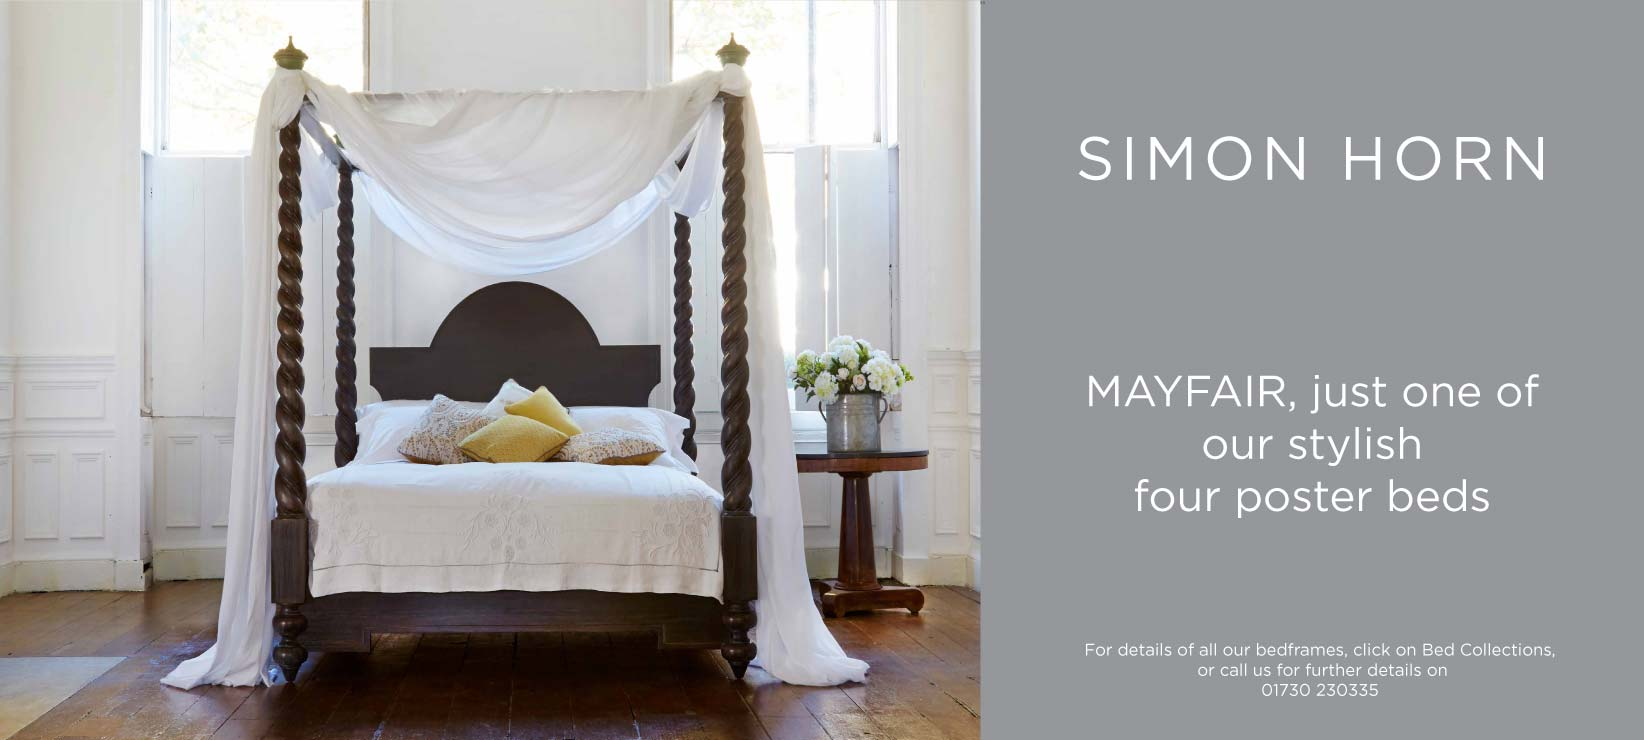 Mayfair Four Poster Bed Simon Horn